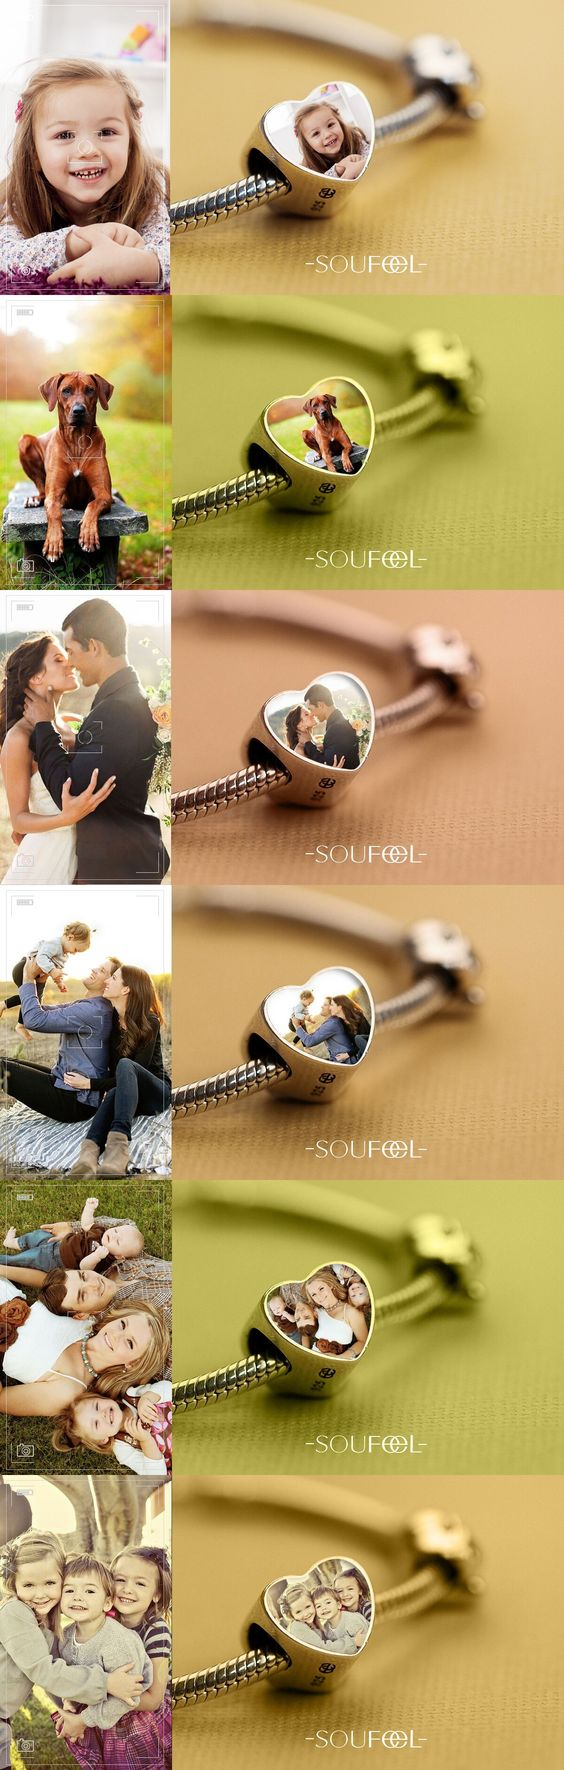 Just select a charm, upload a photo and make that photo a long-lasting piece of jewelry you can wear for years to come. Whatever the photo is about, your wedding/your dog/your baby/your family or the words you like, you can make any picture you like into the charm. Soufeel jewelry, for every memorable day!: